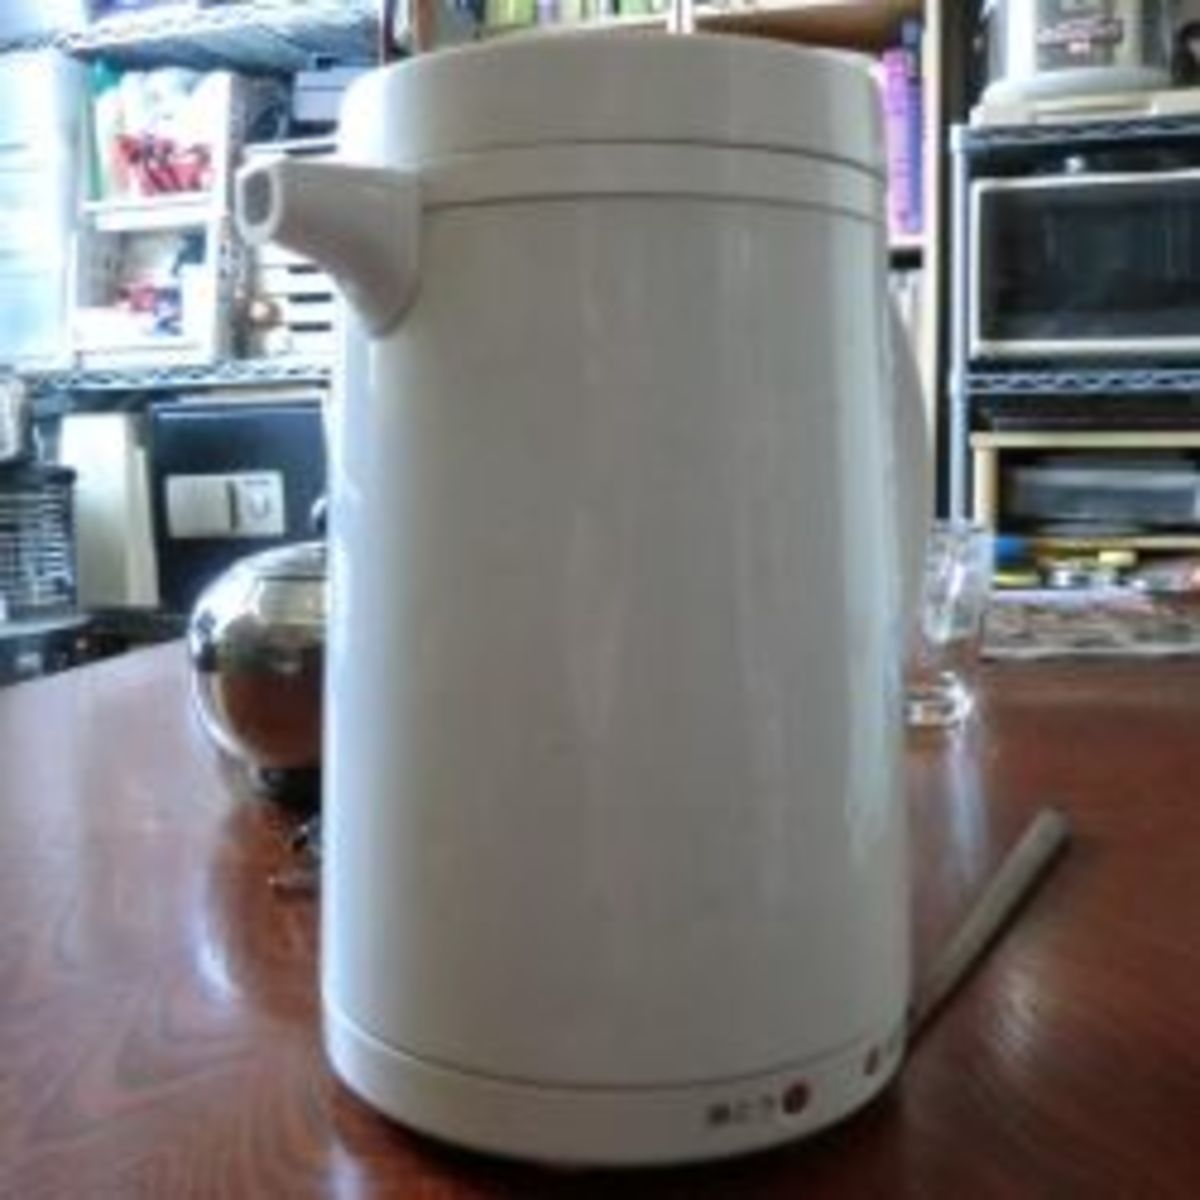 Every Japanese Kitchen: the Electric Kettle